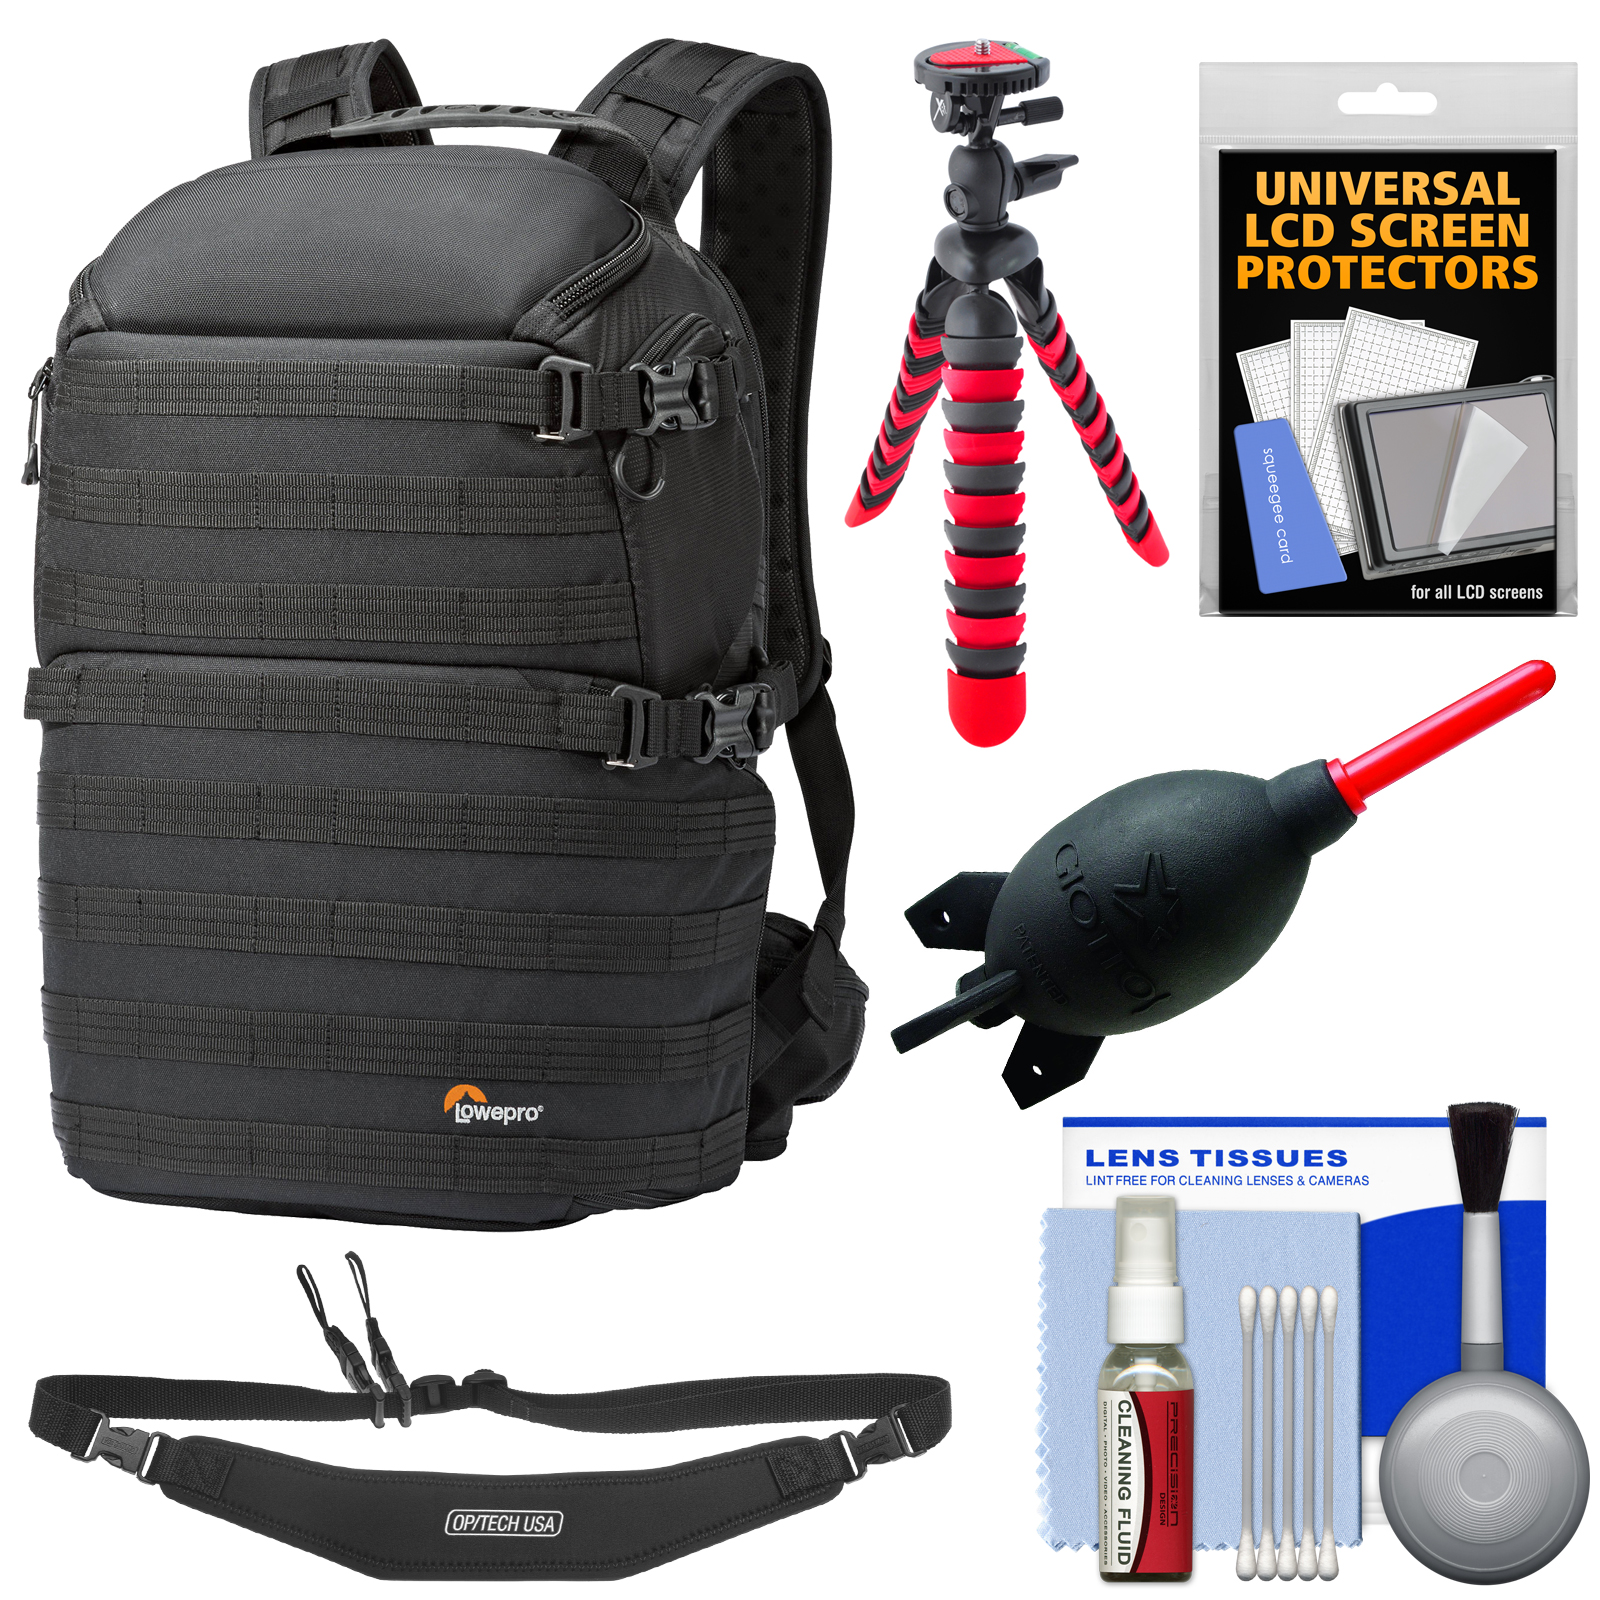 Lowepro Pro Tactic 450 AW Digital SLR Camera Backpack Case (Black) with Flex Tripod + Sling Strap + Accessory... by Lowepro